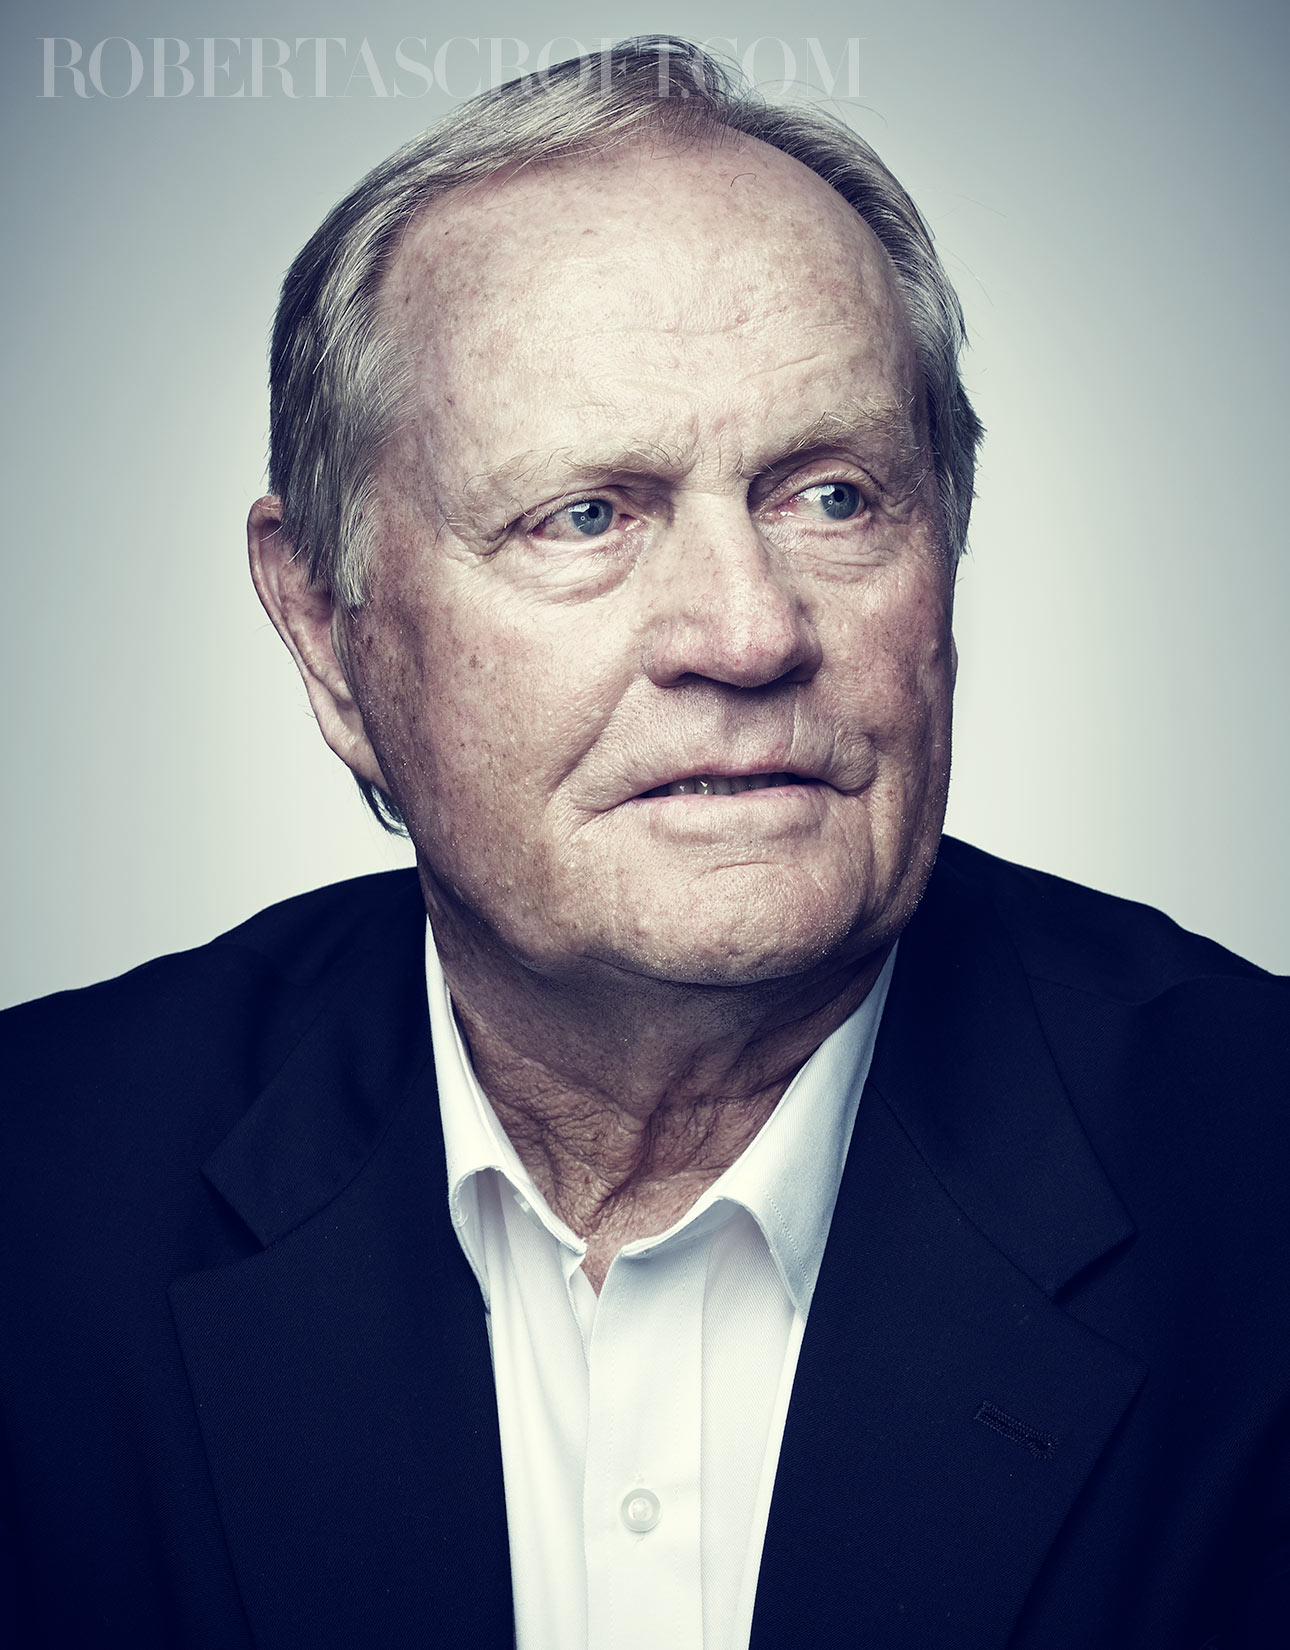 Jack-Nicklaus-by-Robert-Ascroft.jpg